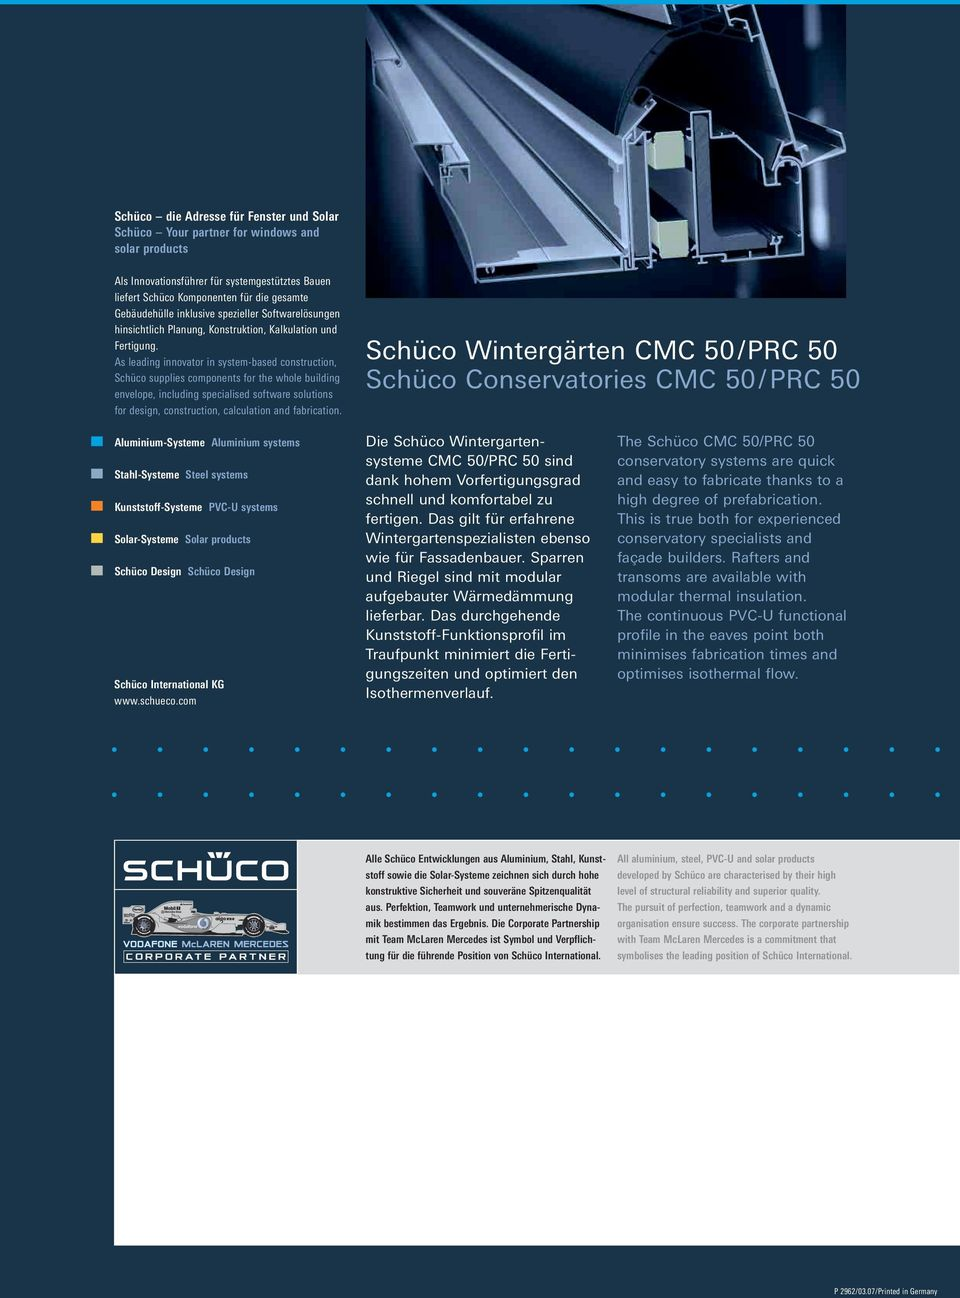 As leading innovator in system-based construction, Schüco supplies components for the whole building envelope, including specialised software solutions for design, construction, calculation and